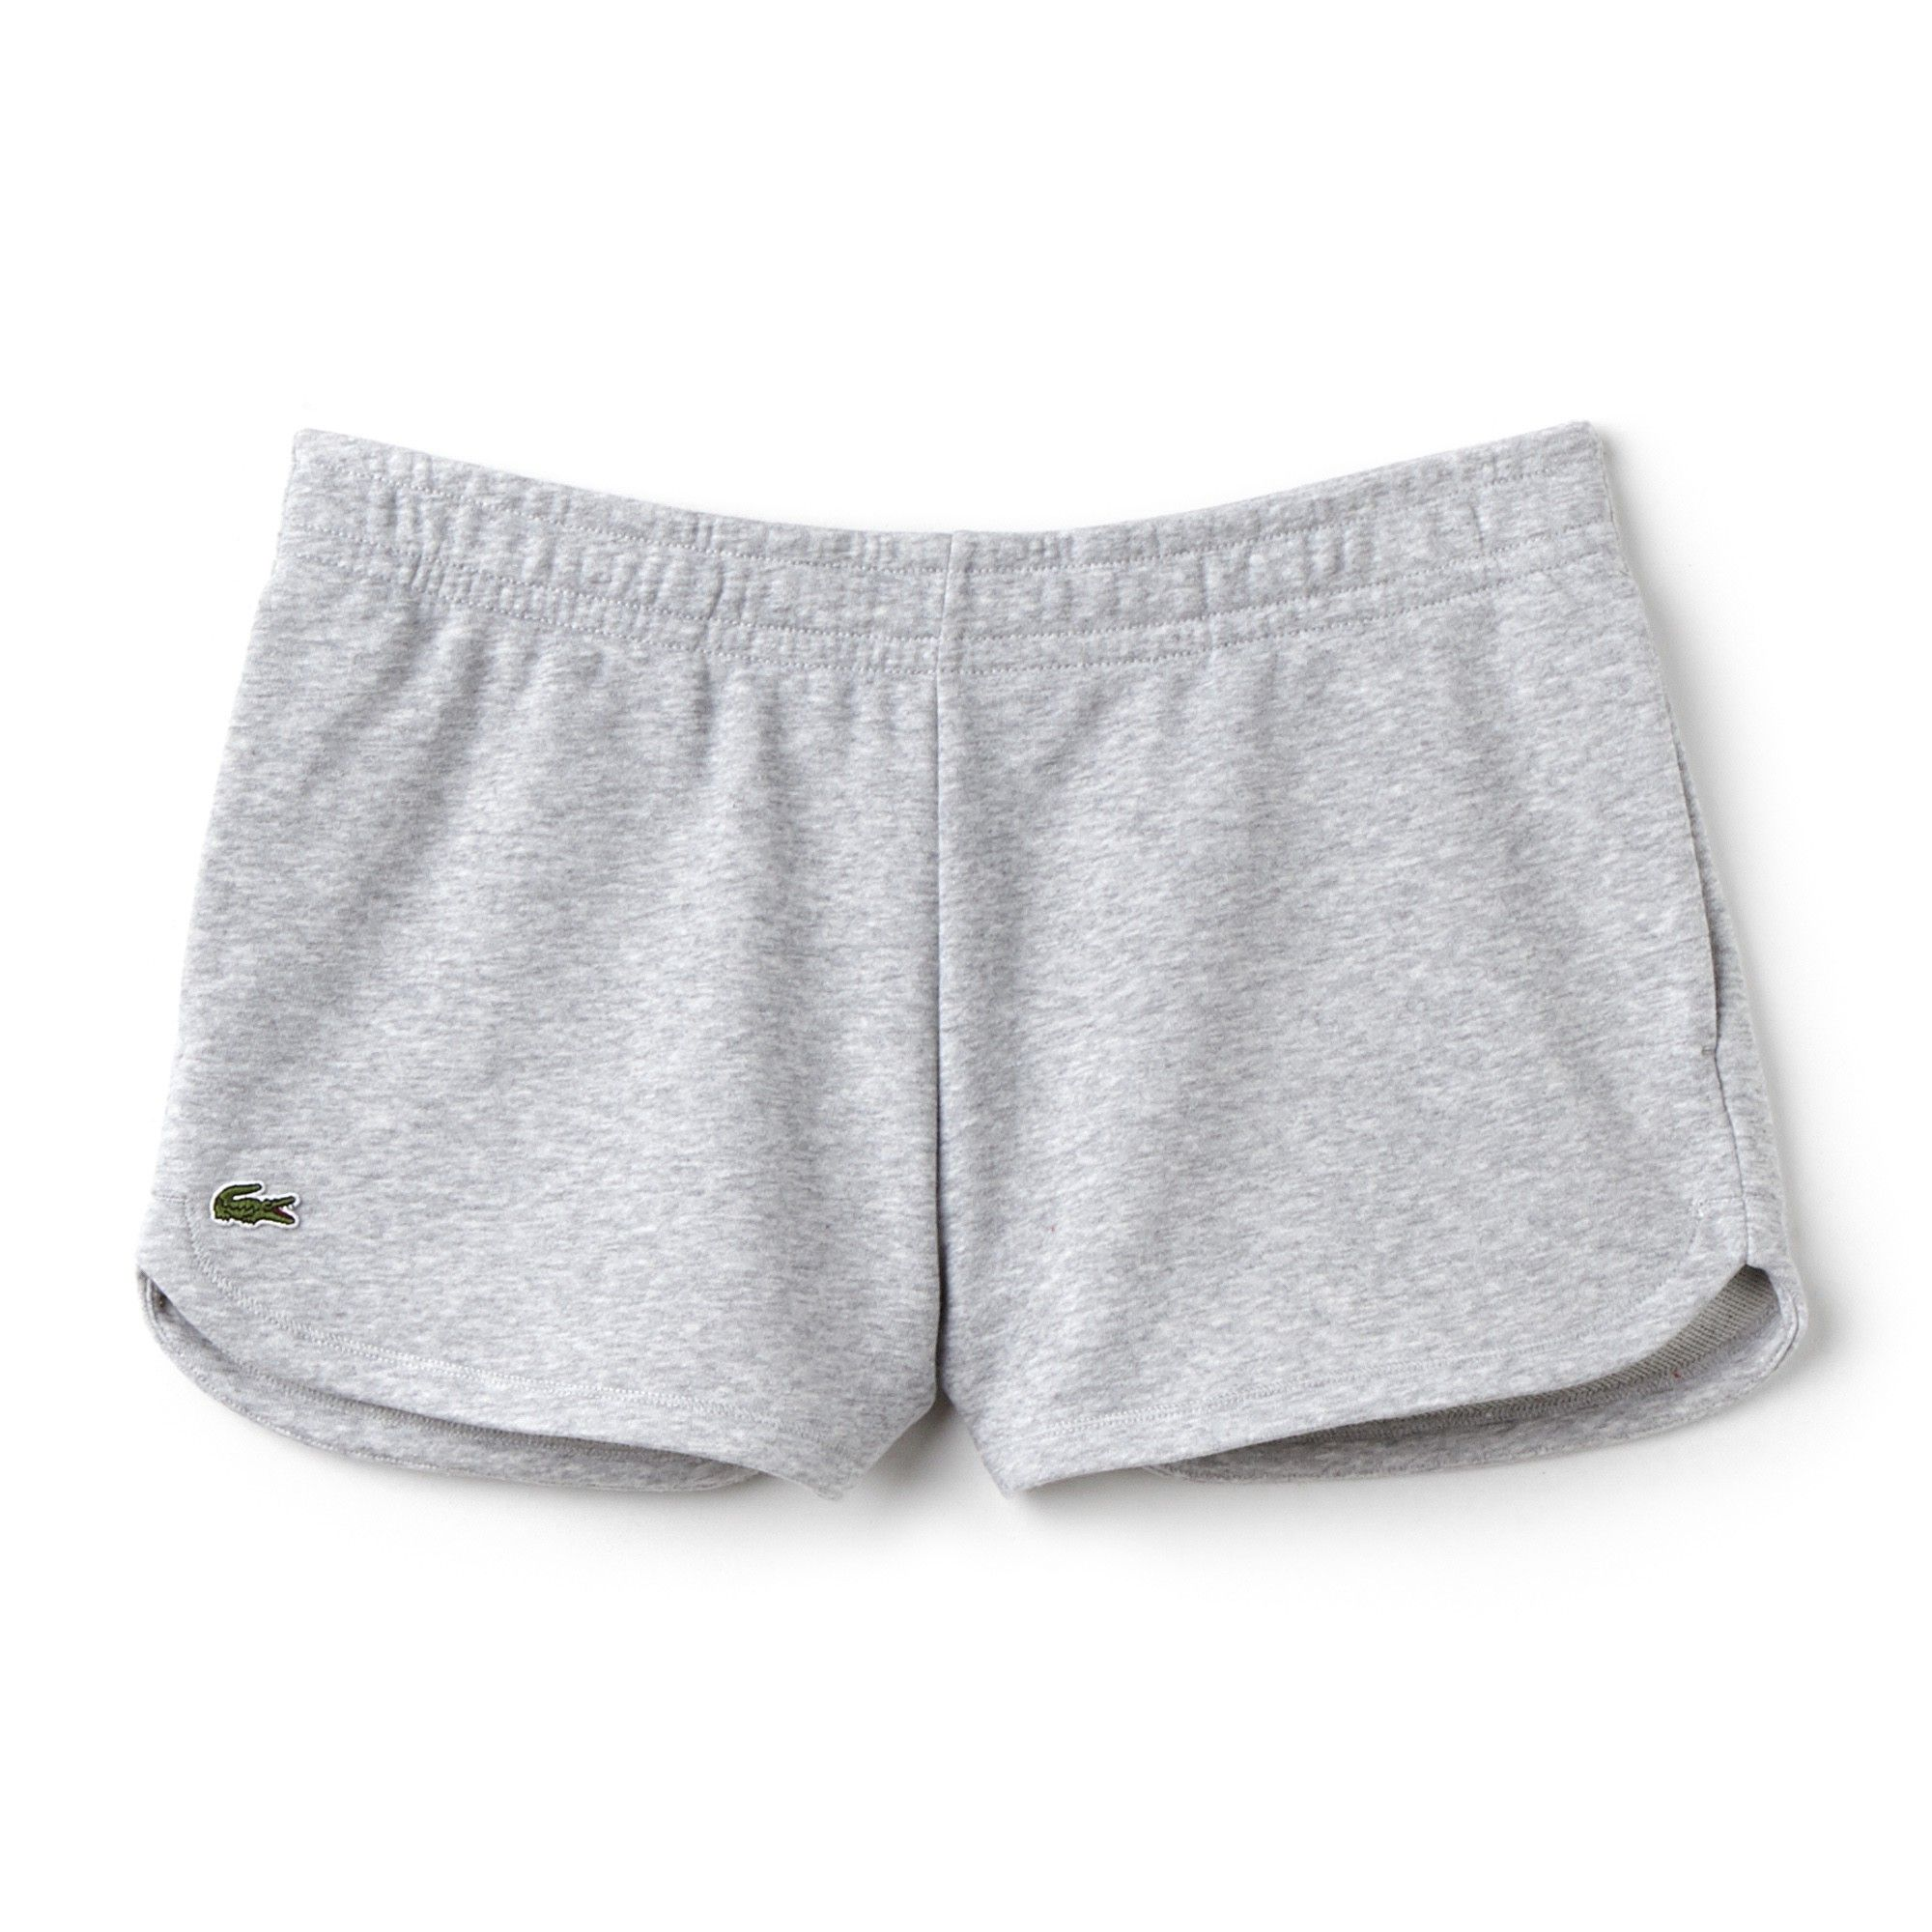 a8e2b60e3562a3 Lacoste Women s Sport Tennis Fleece Shorts - Silver Grey Chine 8 Gray